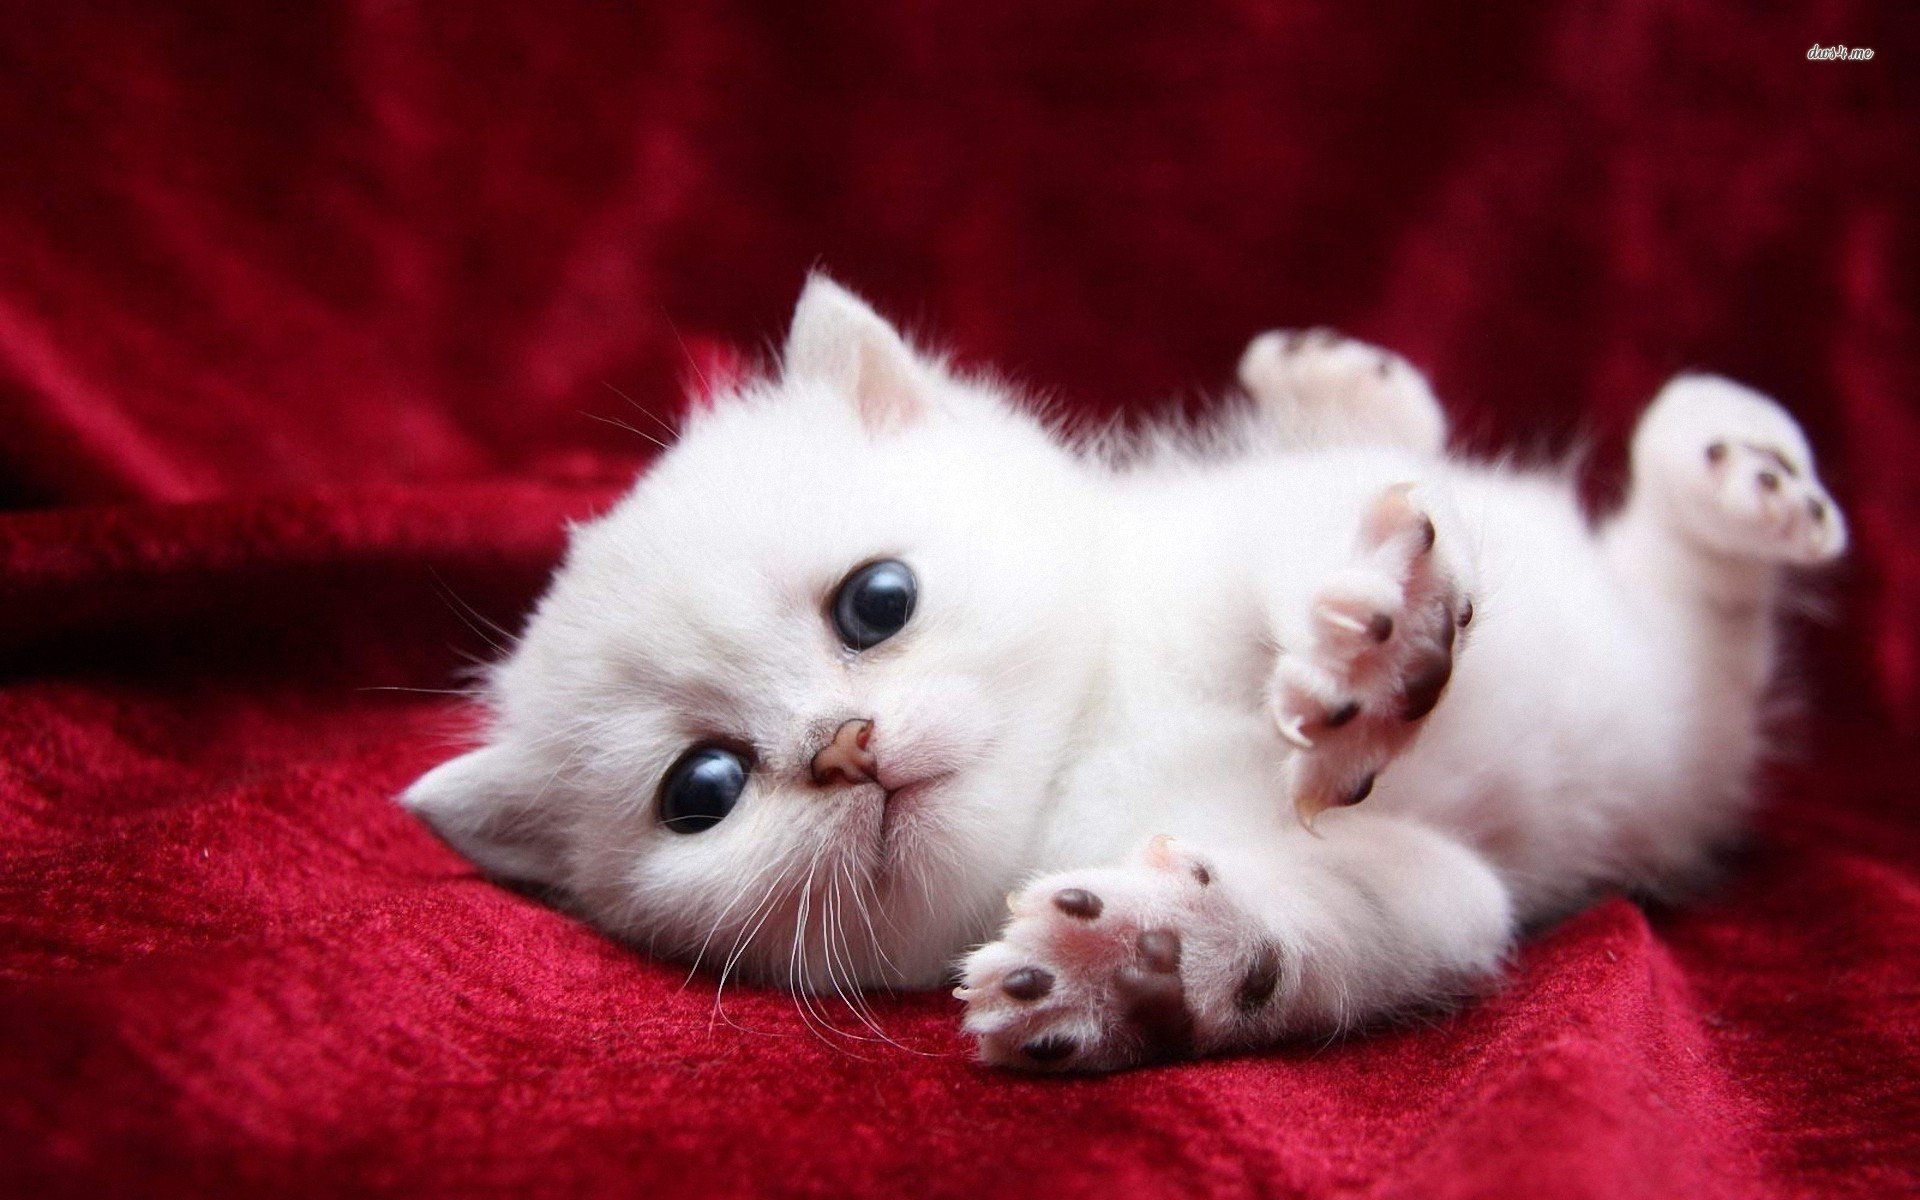 Wallpaper cats and kittens 66 images - Cute kitten wallpaper free download ...